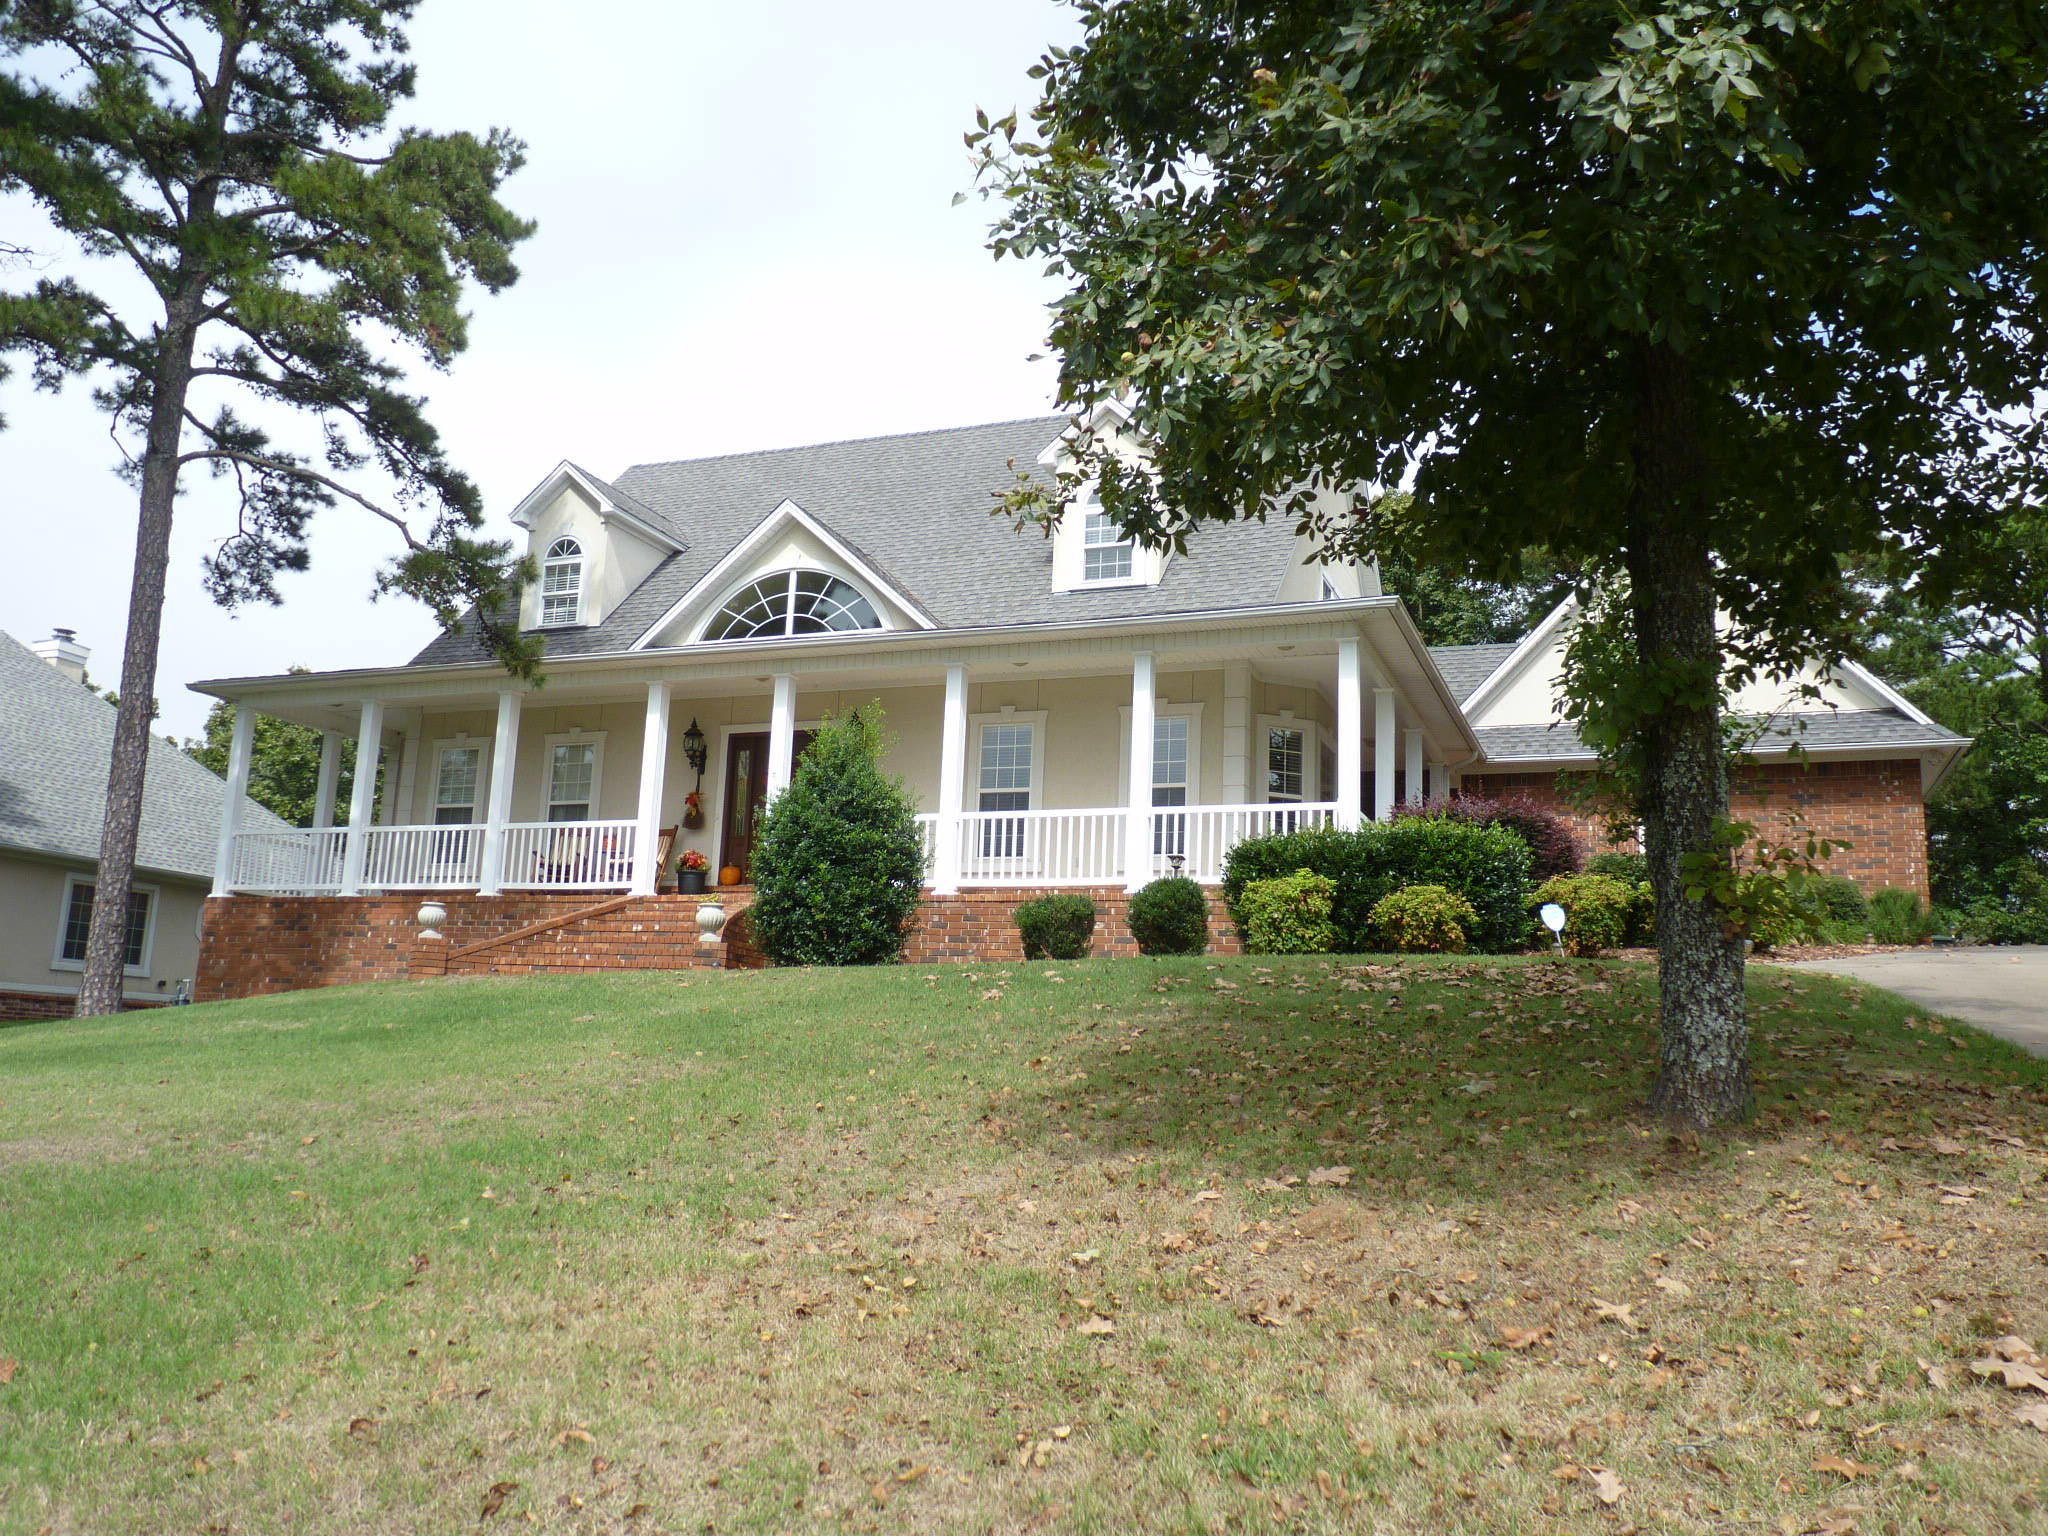 Large photo 3 of home for sale at 42 Ridgeline Drive, Russellville, AR